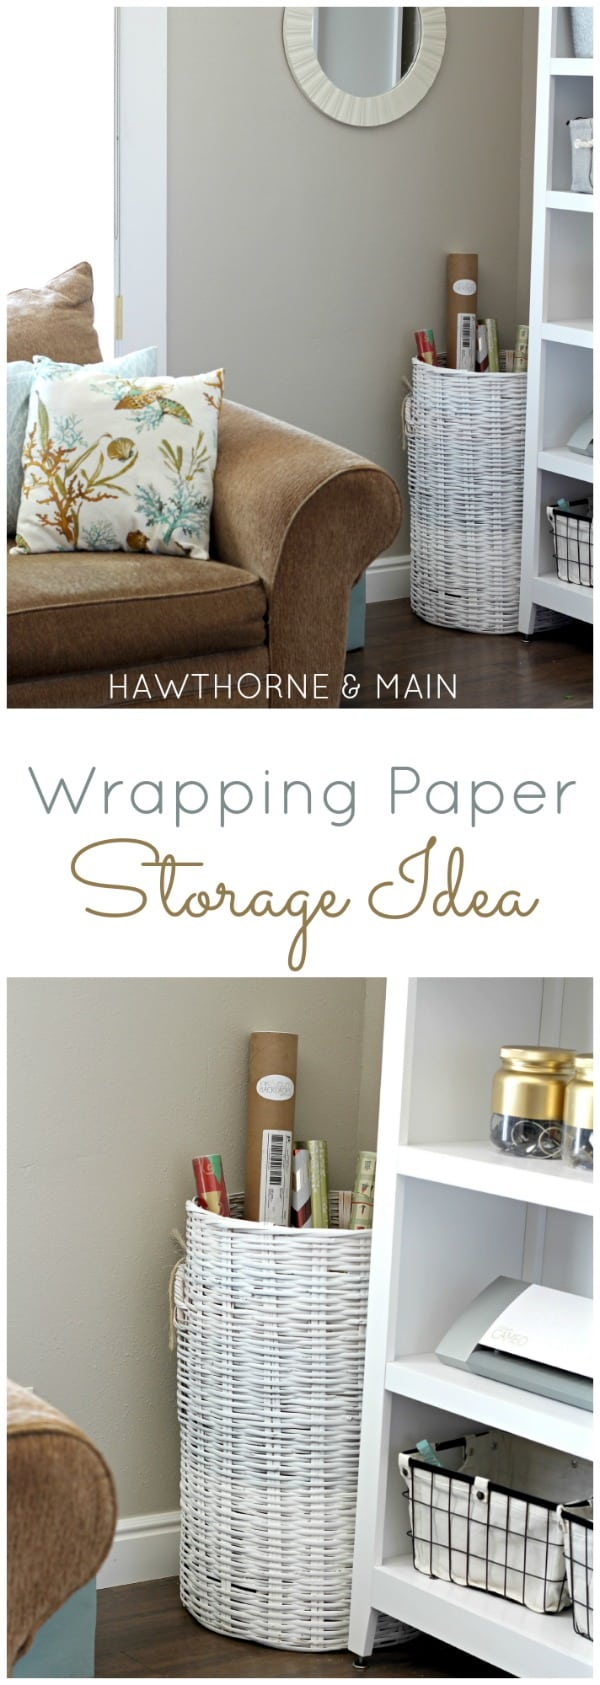 wrapping paper storage title